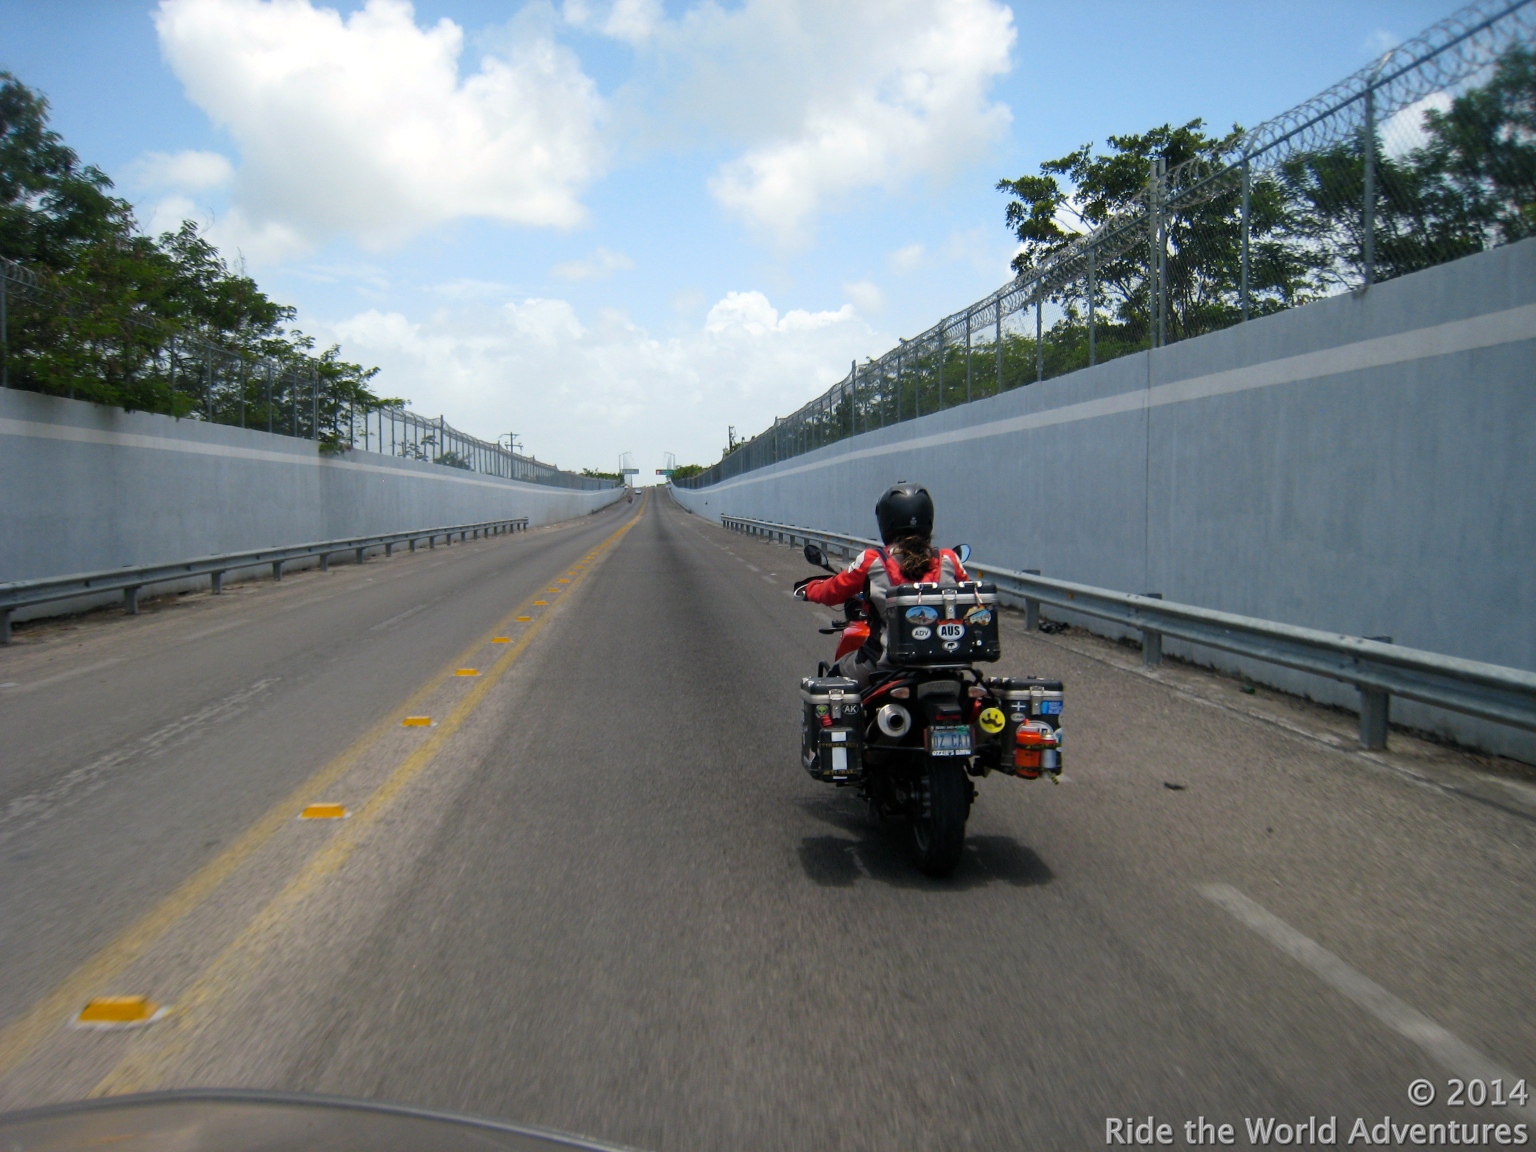 Riding into neutral zone and towards Belize.